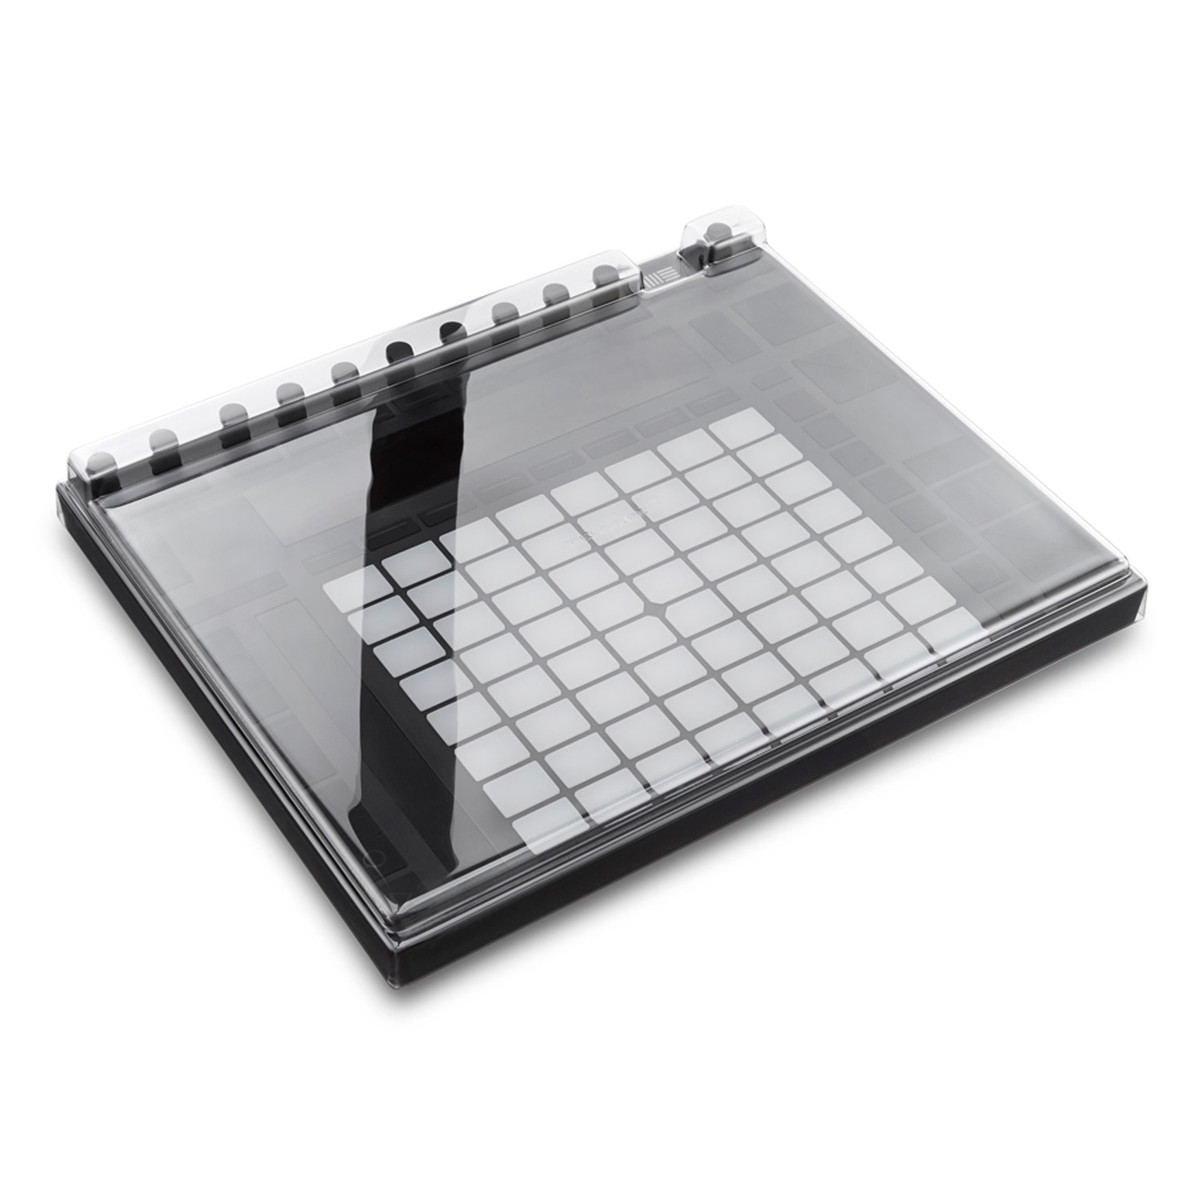 Image of Decksaver Ableton Push 2 Cover